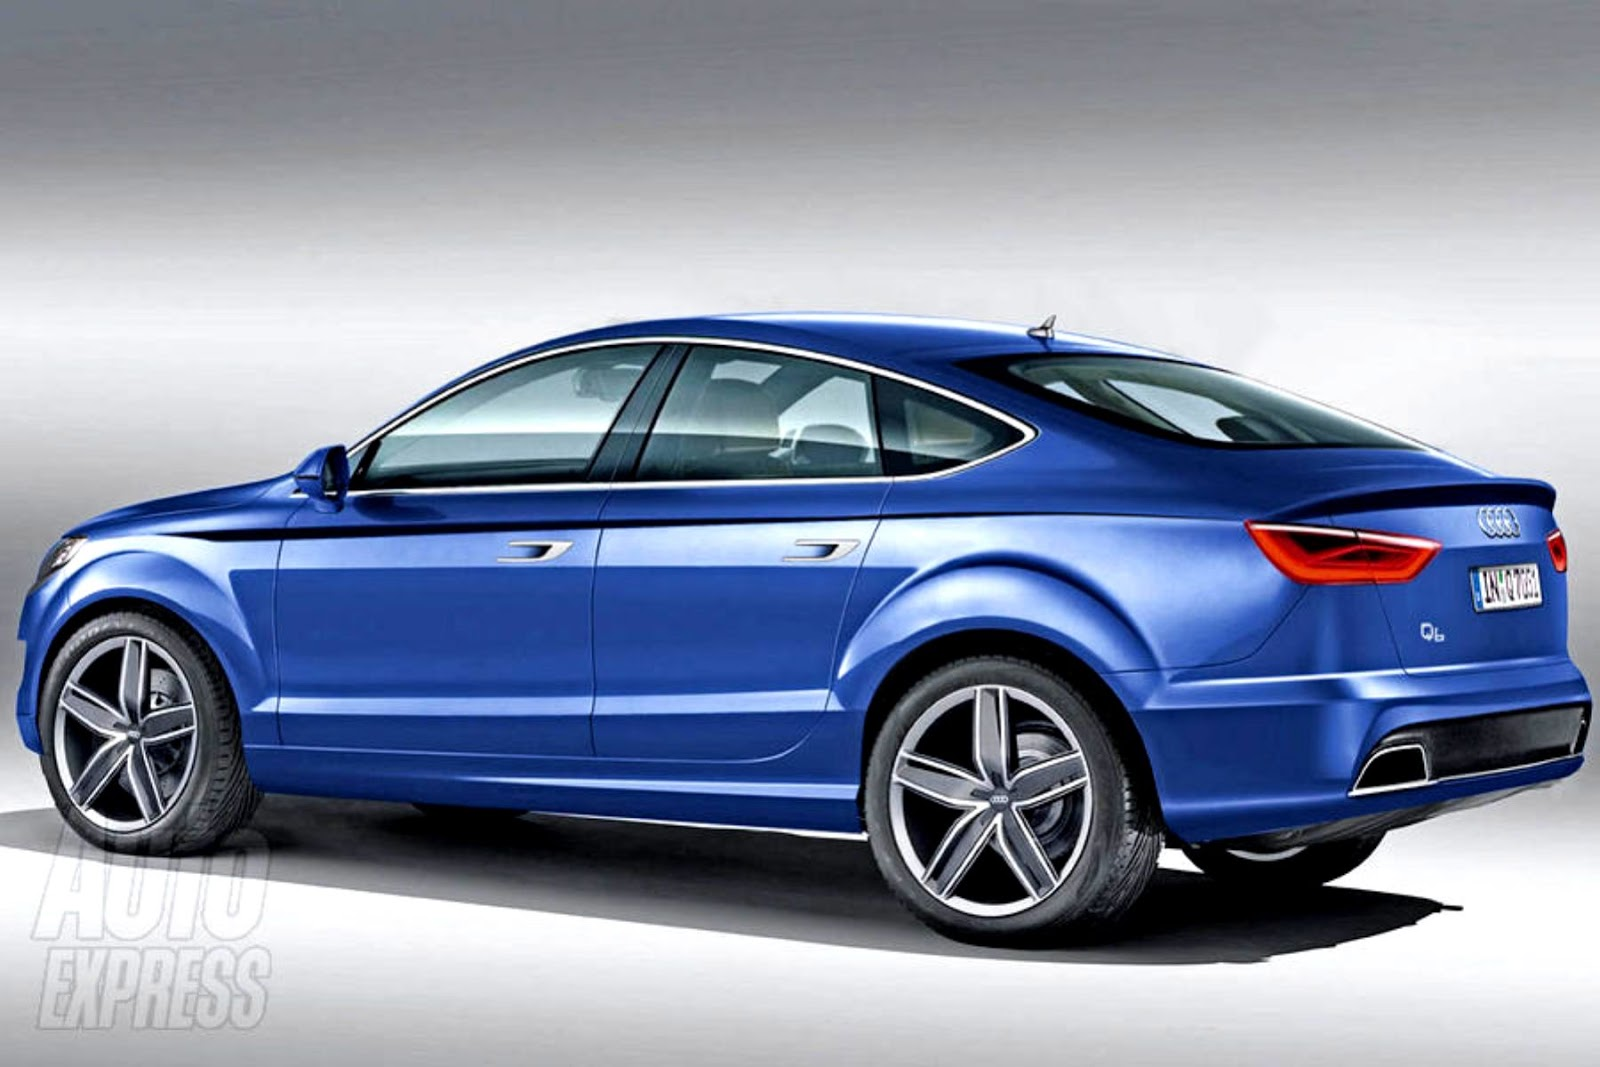 Car al Top 33: AUDI Q6: SUV-COUPE MADY IN INGOLSTADT